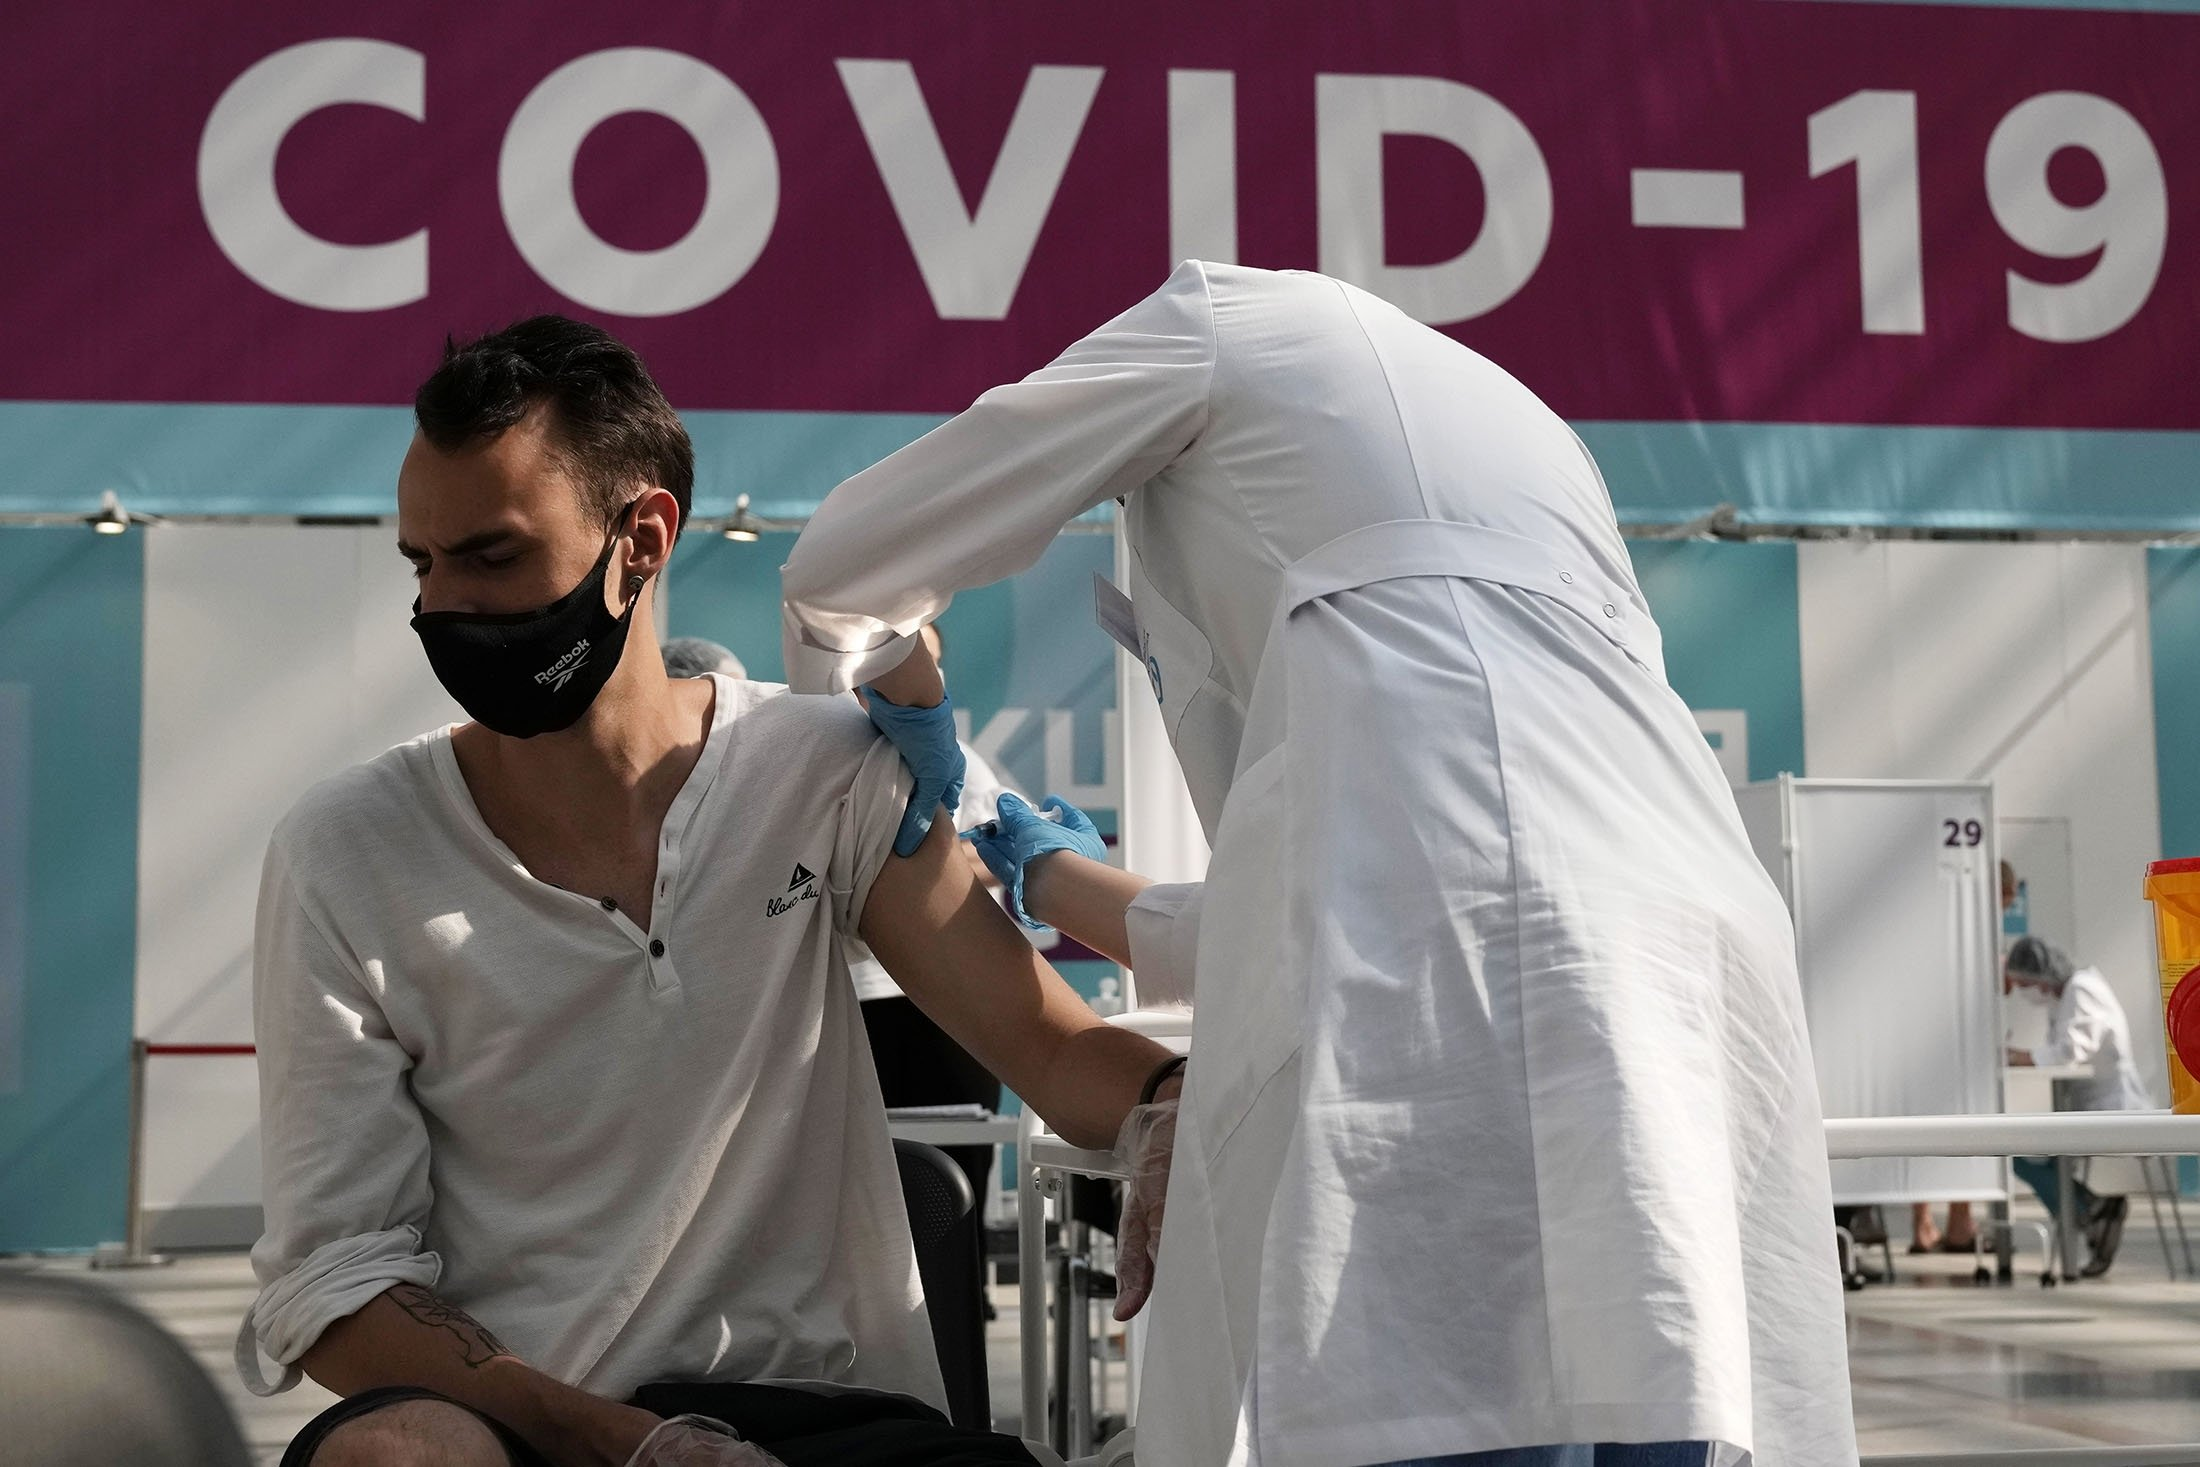 A medical worker administers a shot of Russia's Sputnik V coronavirus vaccine at a vaccination center in Gostinny Dvor, a huge exhibition place in Moscow, Russia, July 12, 2021. (AP Photo)